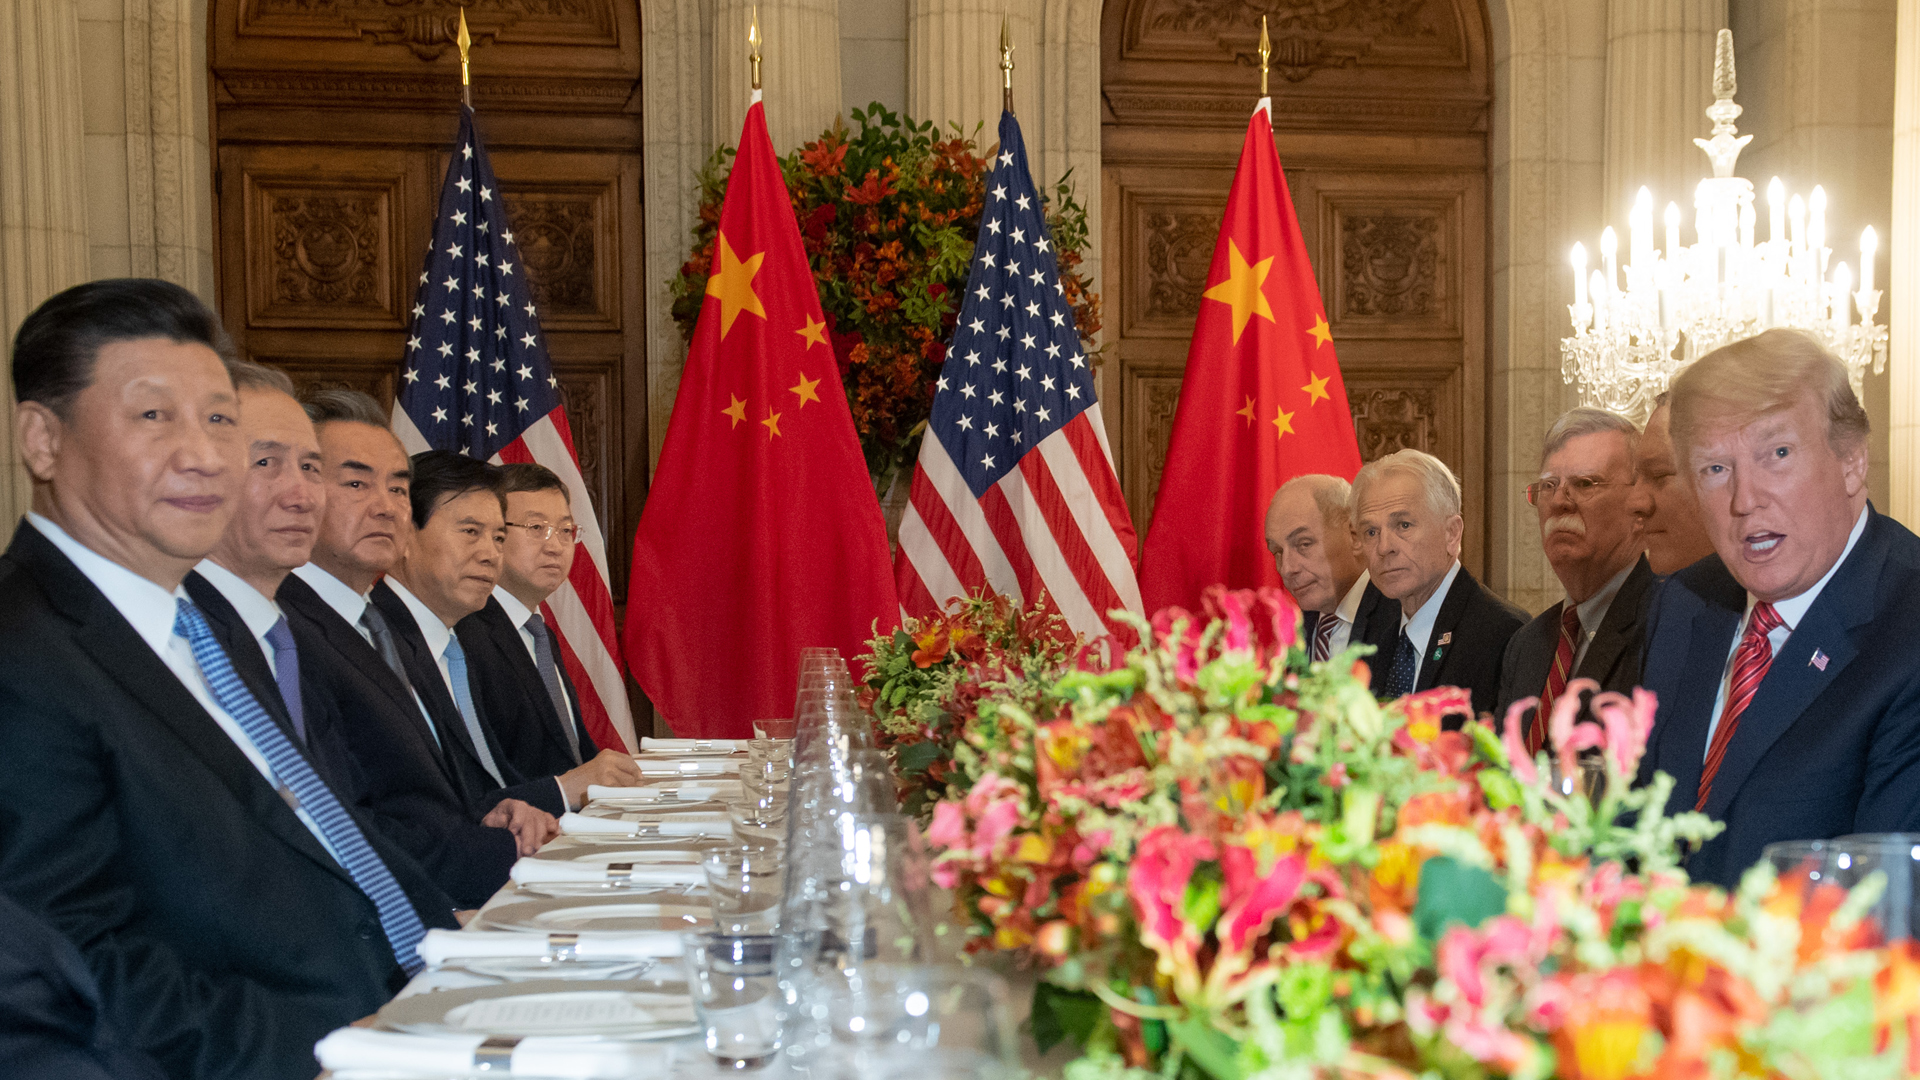 U.S. President Donald Trump and China's President Xi Jinping, along with members of their delegations, hold a dinner meeting at the end of the G20 Leaders' Summit in Buenos Aires, on Dec. 1, 2018. (Credit: SAUL LOEB/AFP/Getty Images)